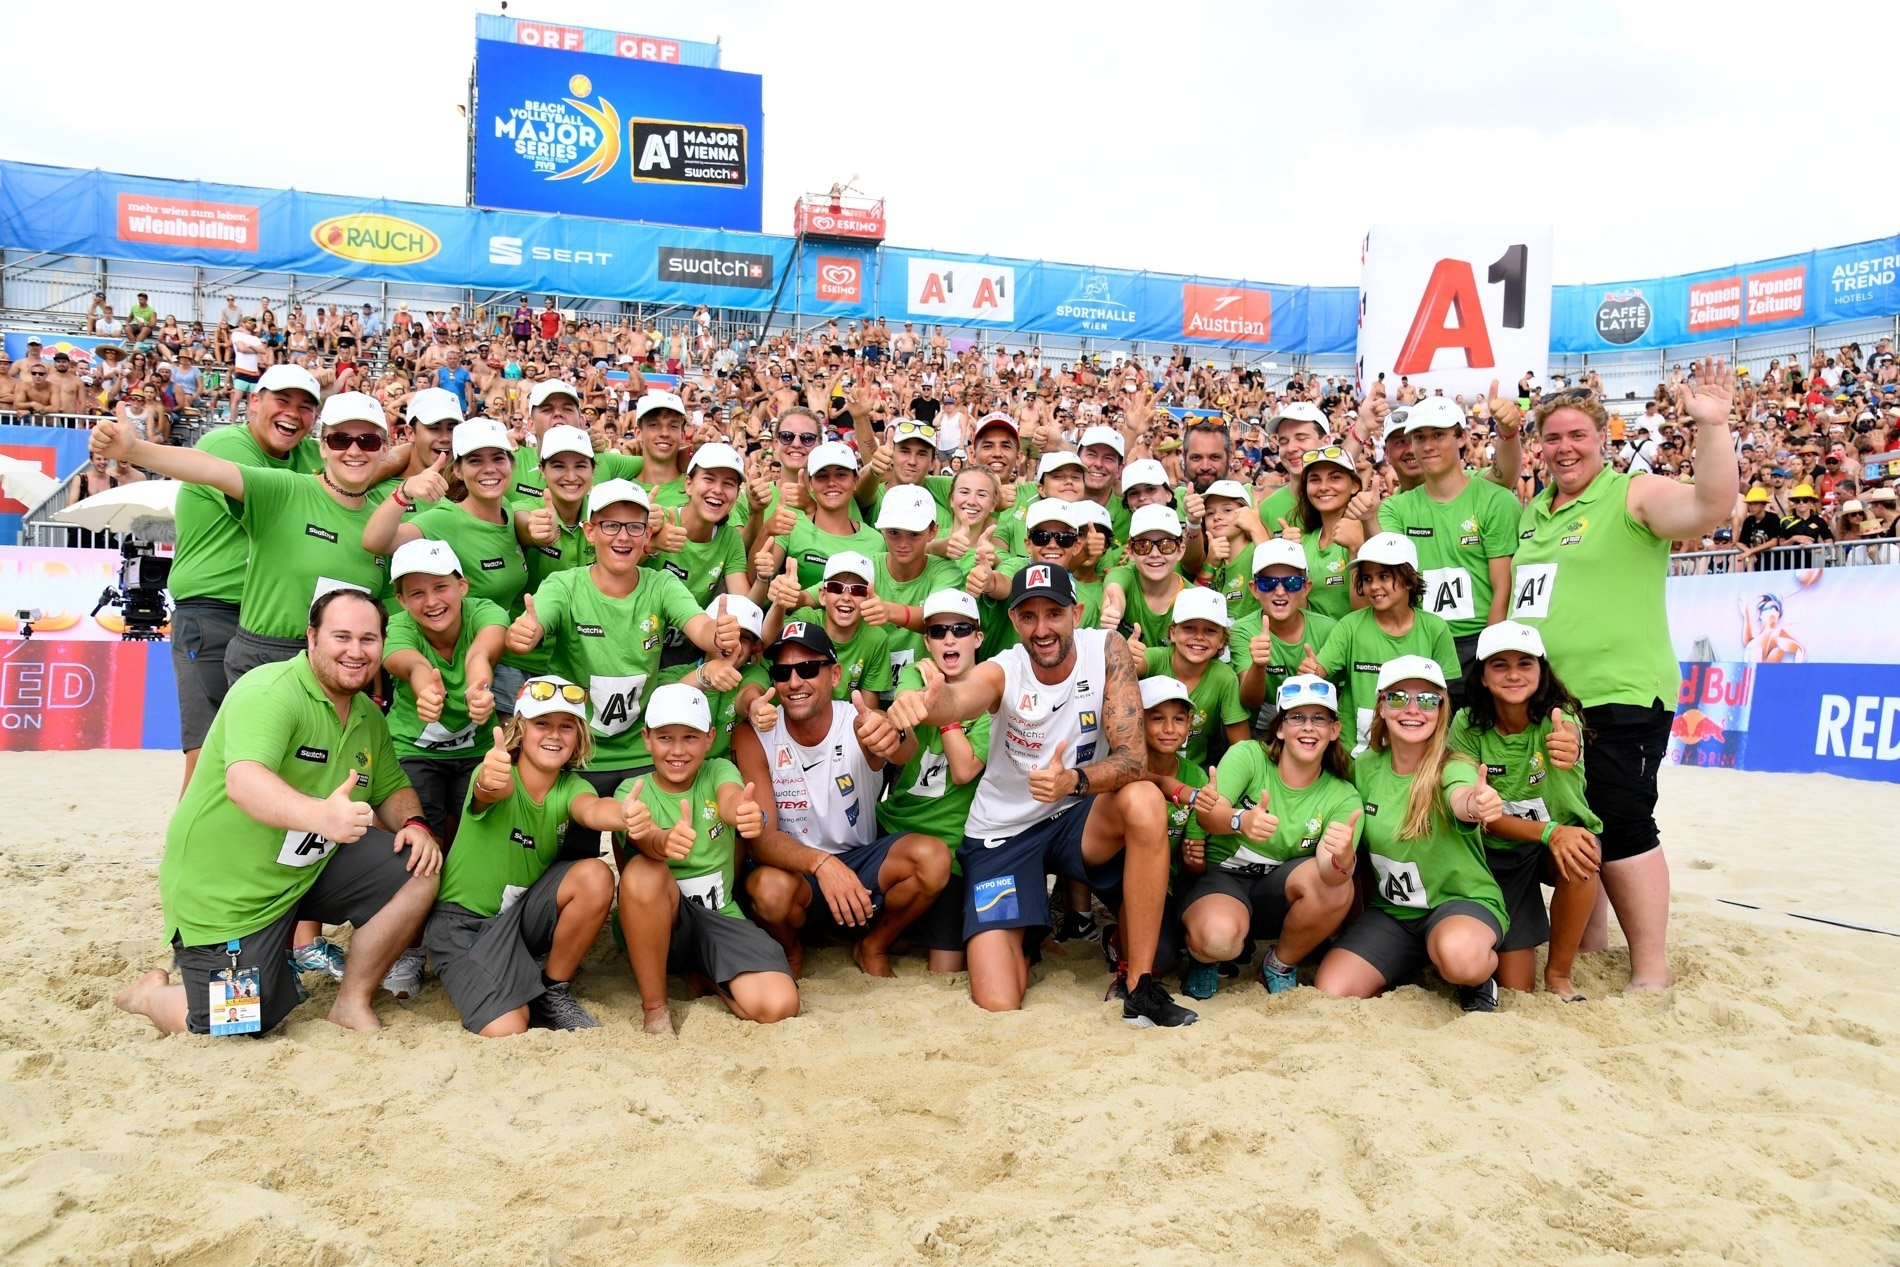 Ein tausendmal Dank! Fotocredit: Beach Major Series